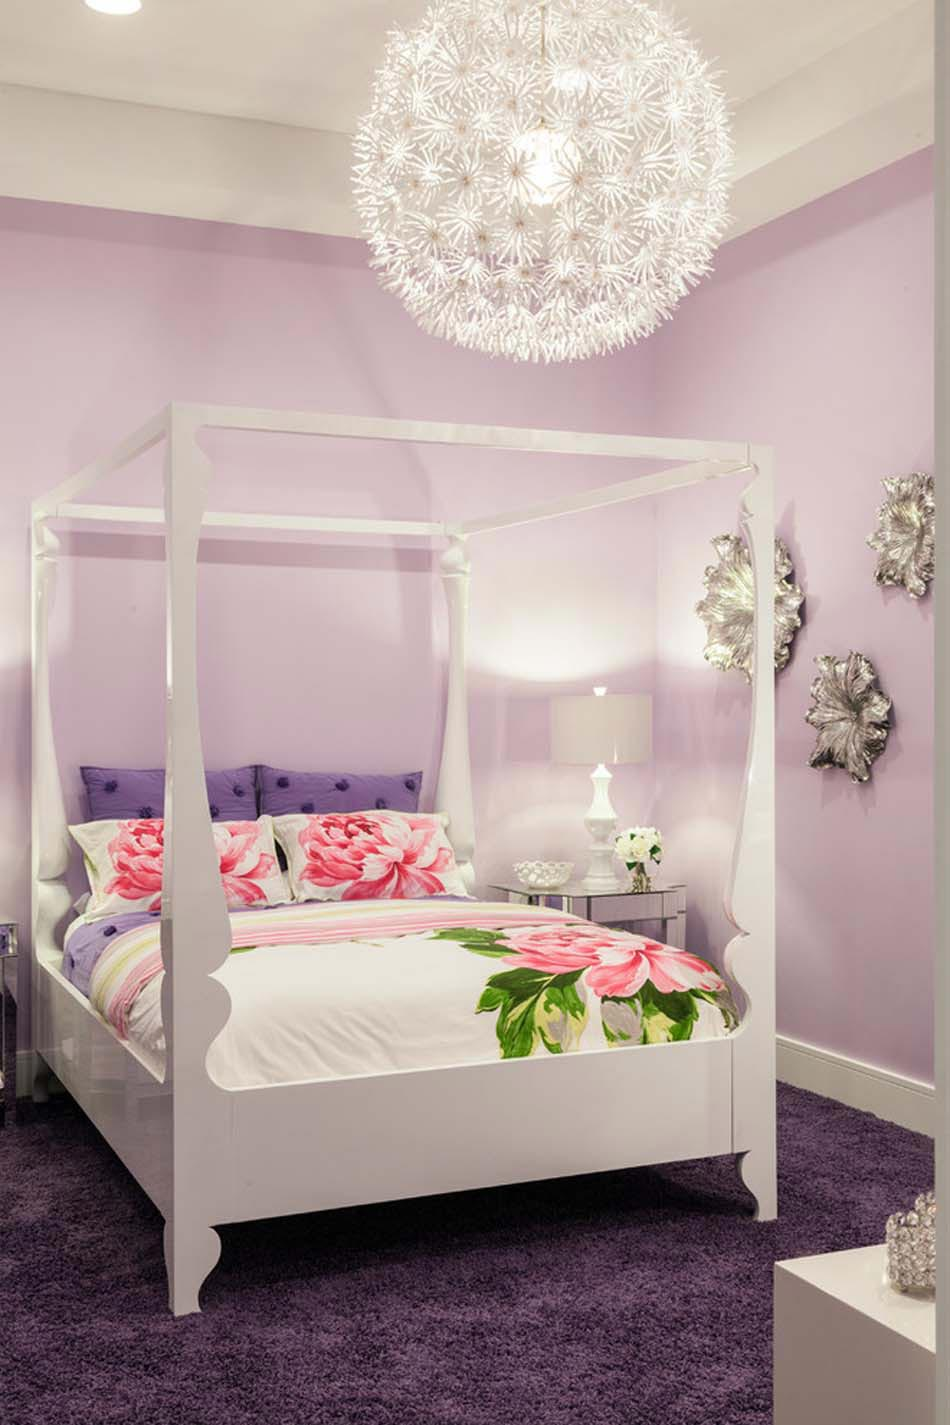 parure de lit cr ant une ambiance color e et printani re dans la chambre coucher design feria. Black Bedroom Furniture Sets. Home Design Ideas